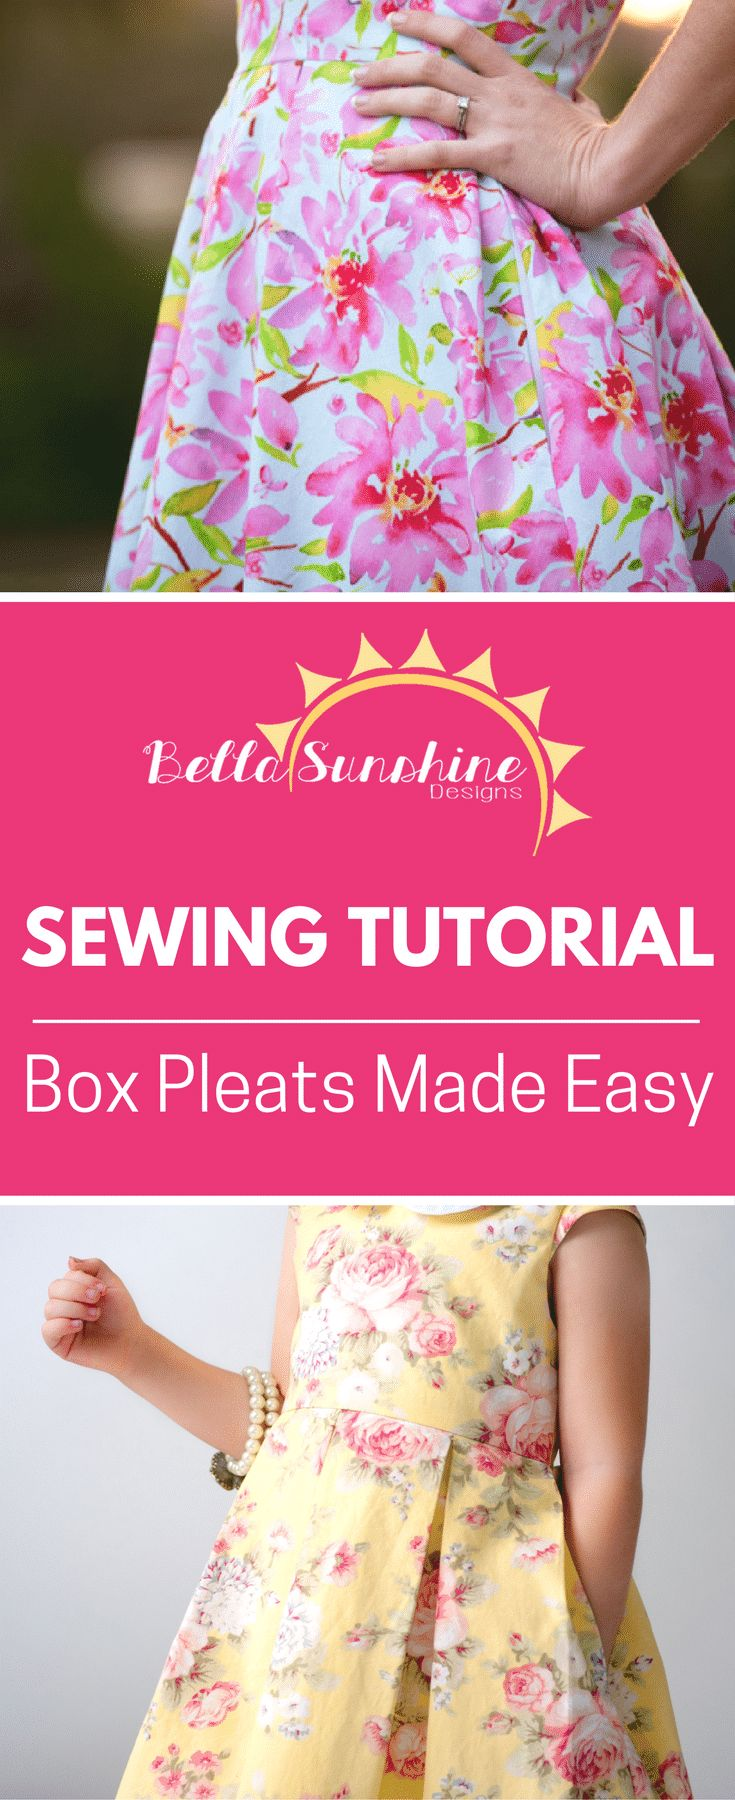 Sewing Tutorial: Box Pleats Made Easy - Must pin for later!